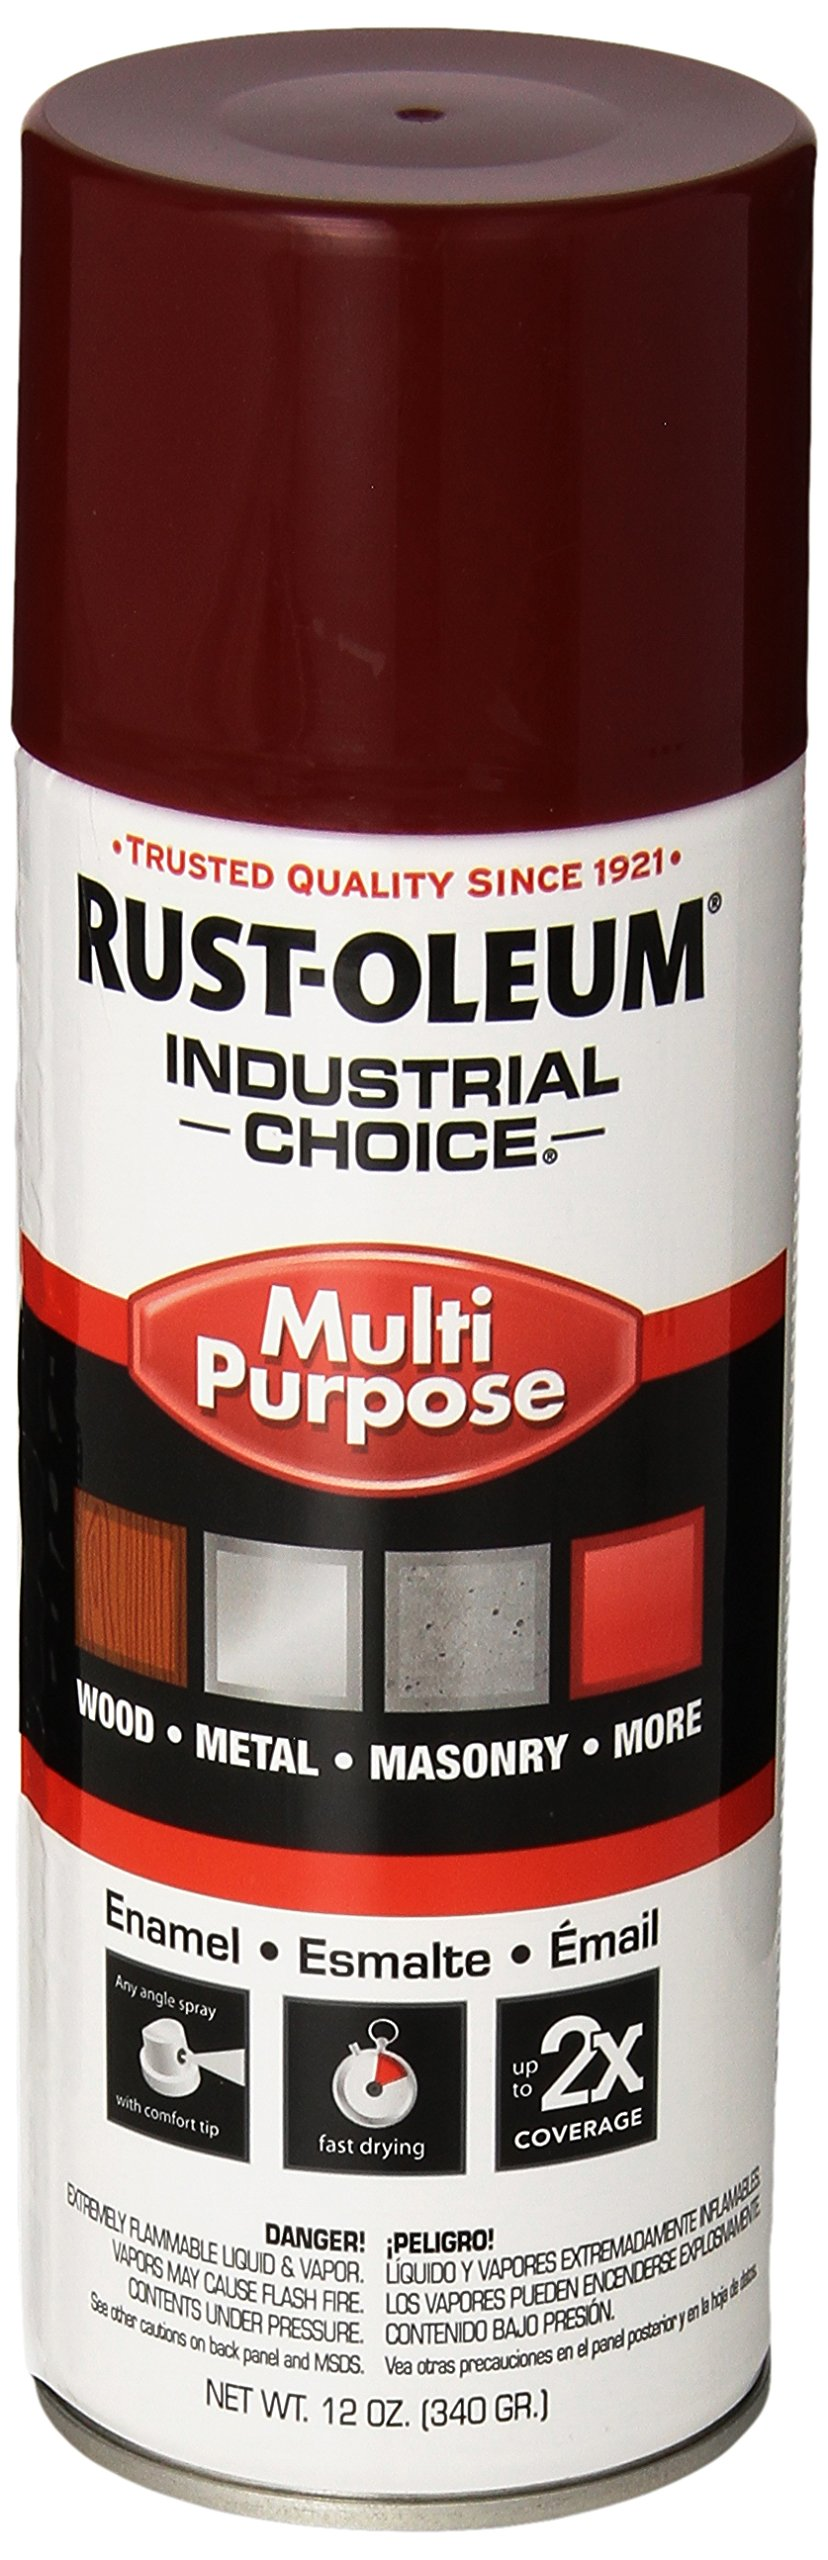 Rust-Oleum 1664830 Cherry Red 1600 System General Purpose Enamel Spray Paint, 16 fl. oz. container, 12 oz. weight fill, Can (Pack of 6)